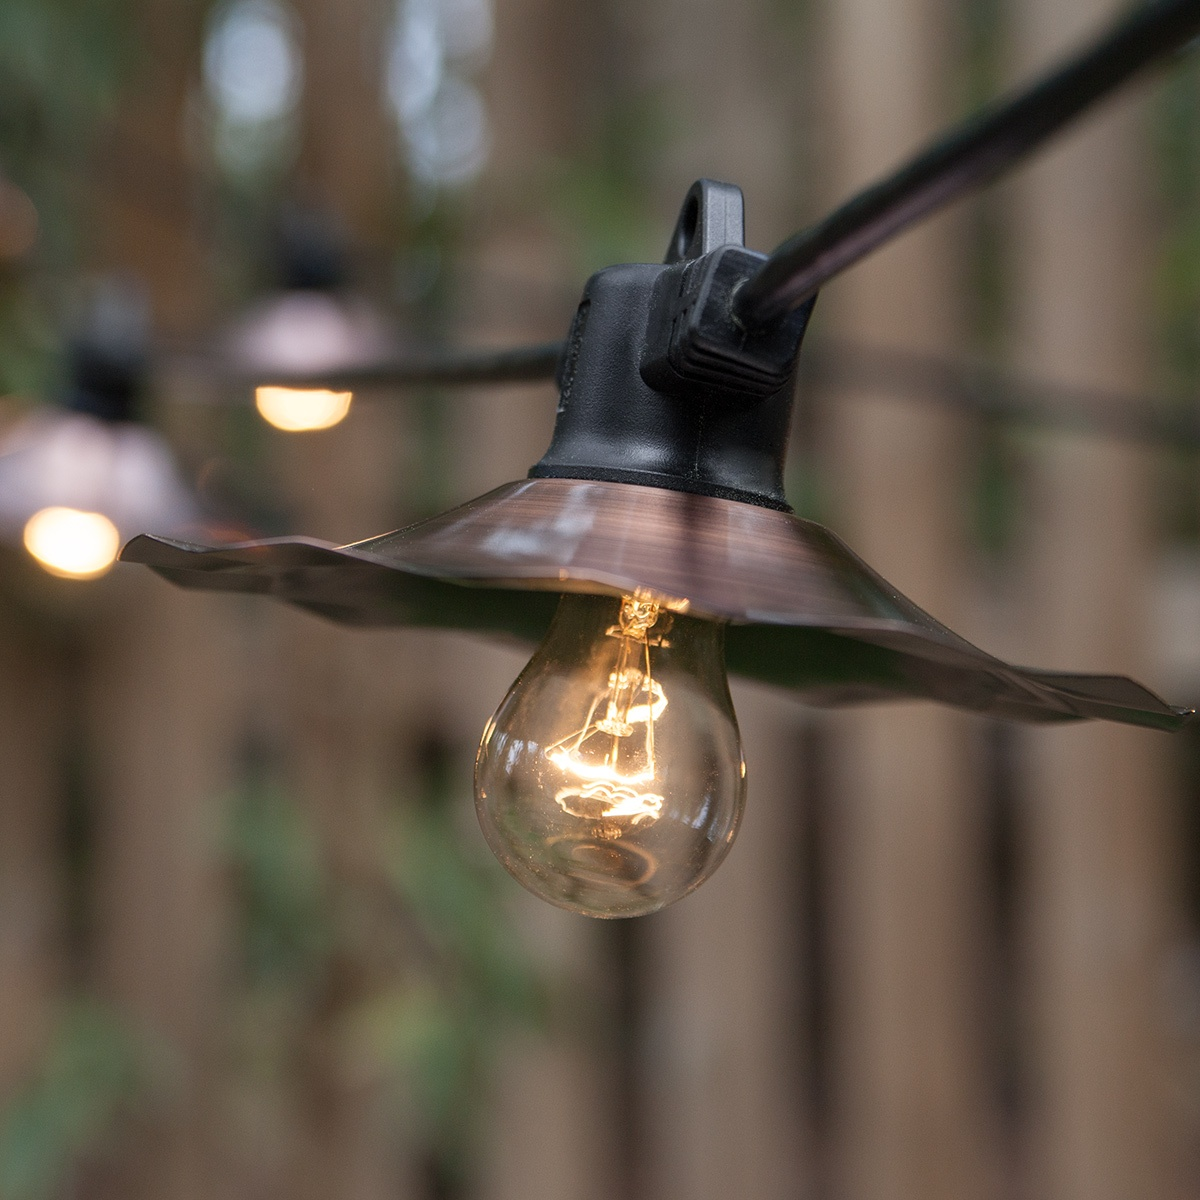 commercial patio lights. Cafe String Lights, Clear A15 Bulbs, Copper Shades Commercial Patio Lights H